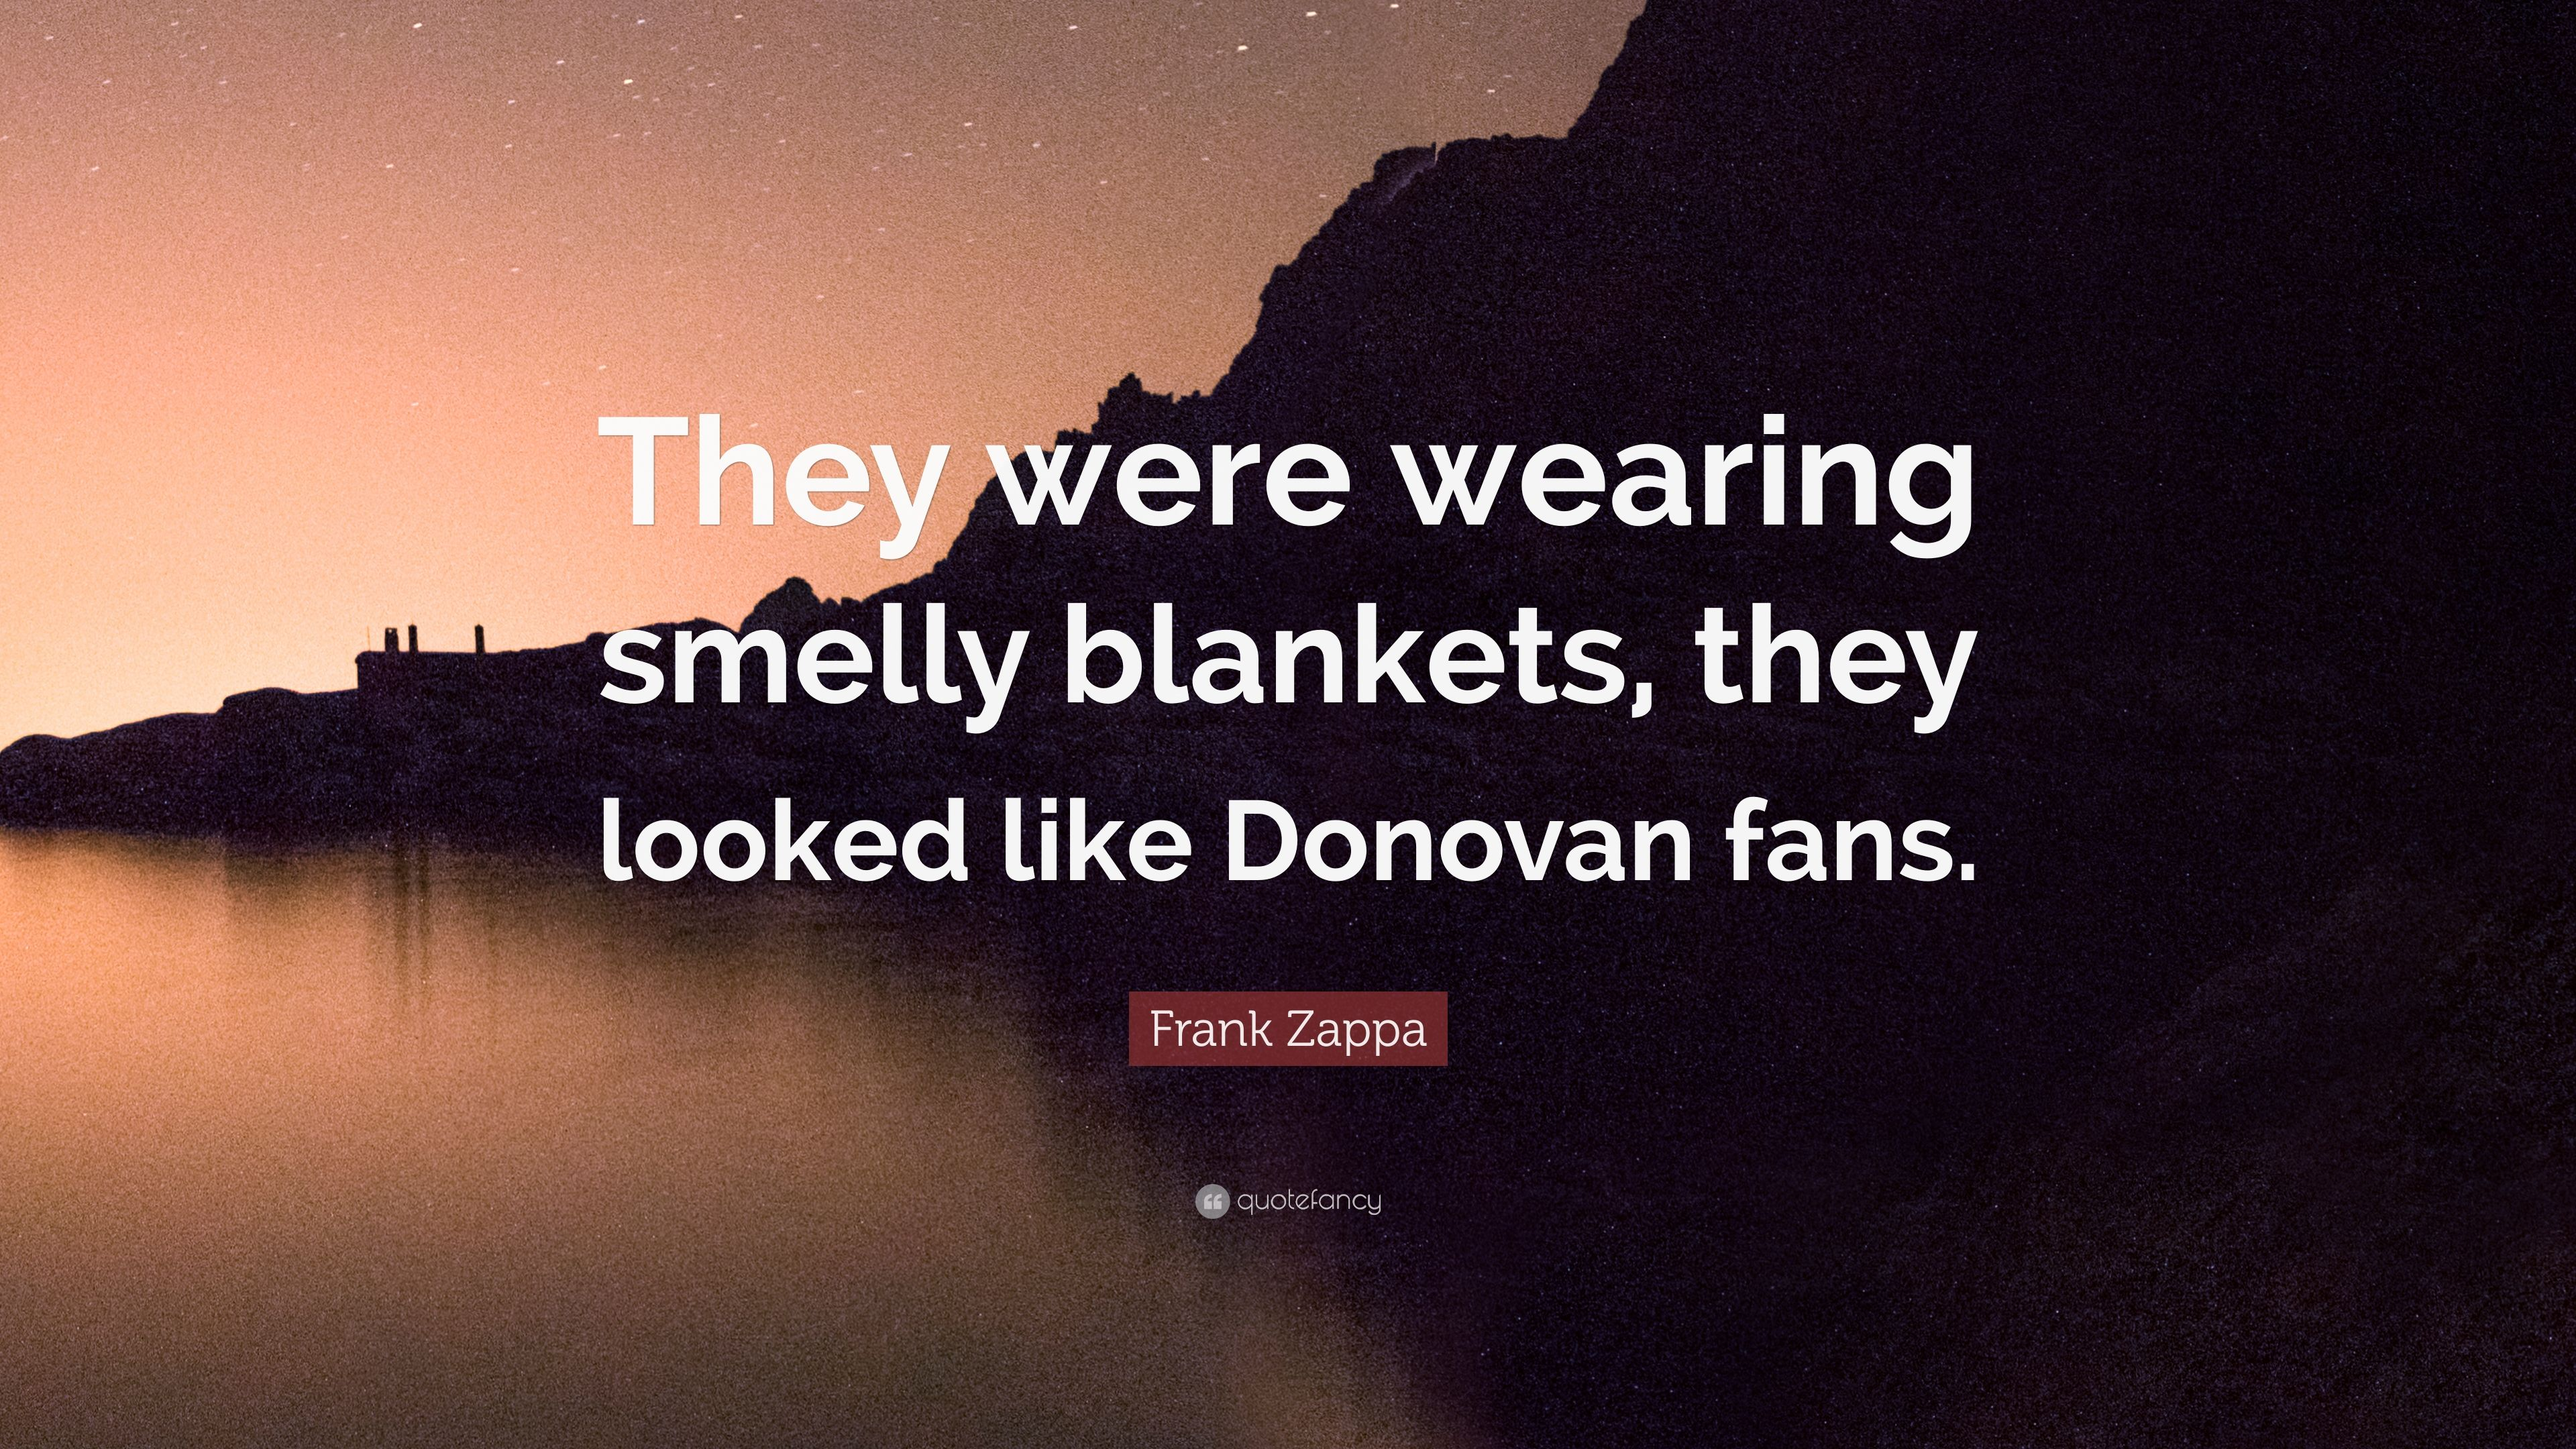 frank zappa quote they were wearing smelly blankets they looked